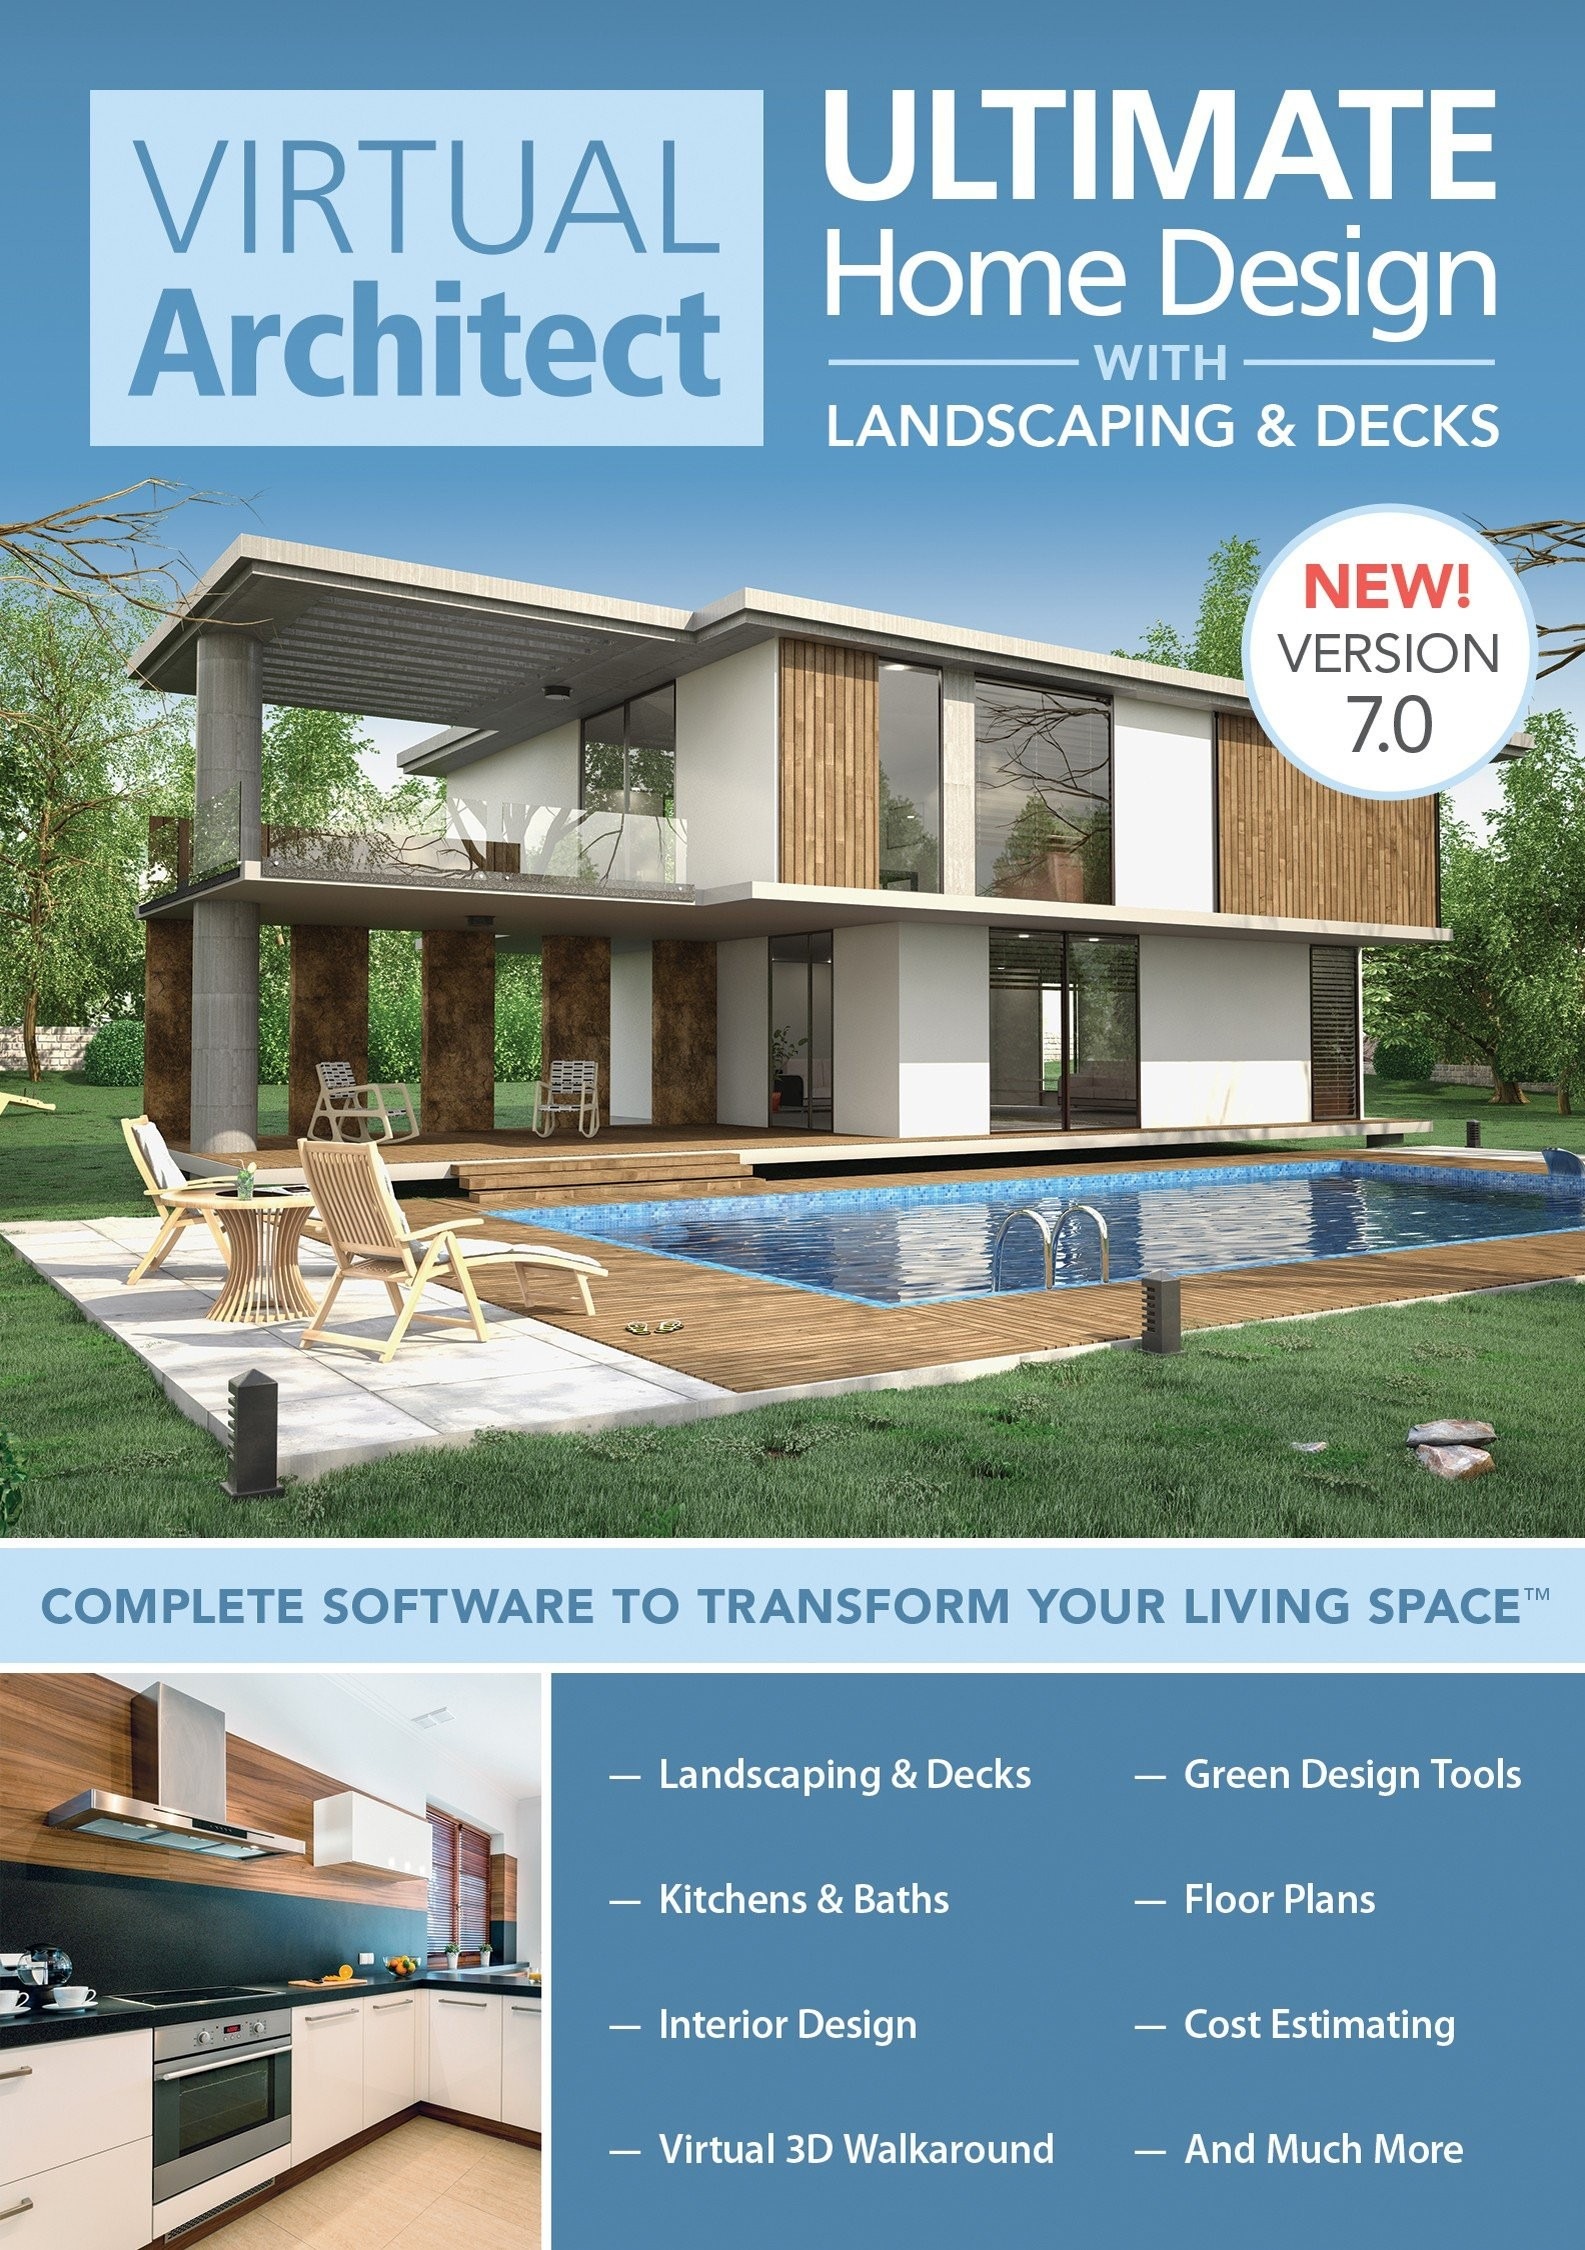 House Plans software Free Fresh Home Sweet Home Design software